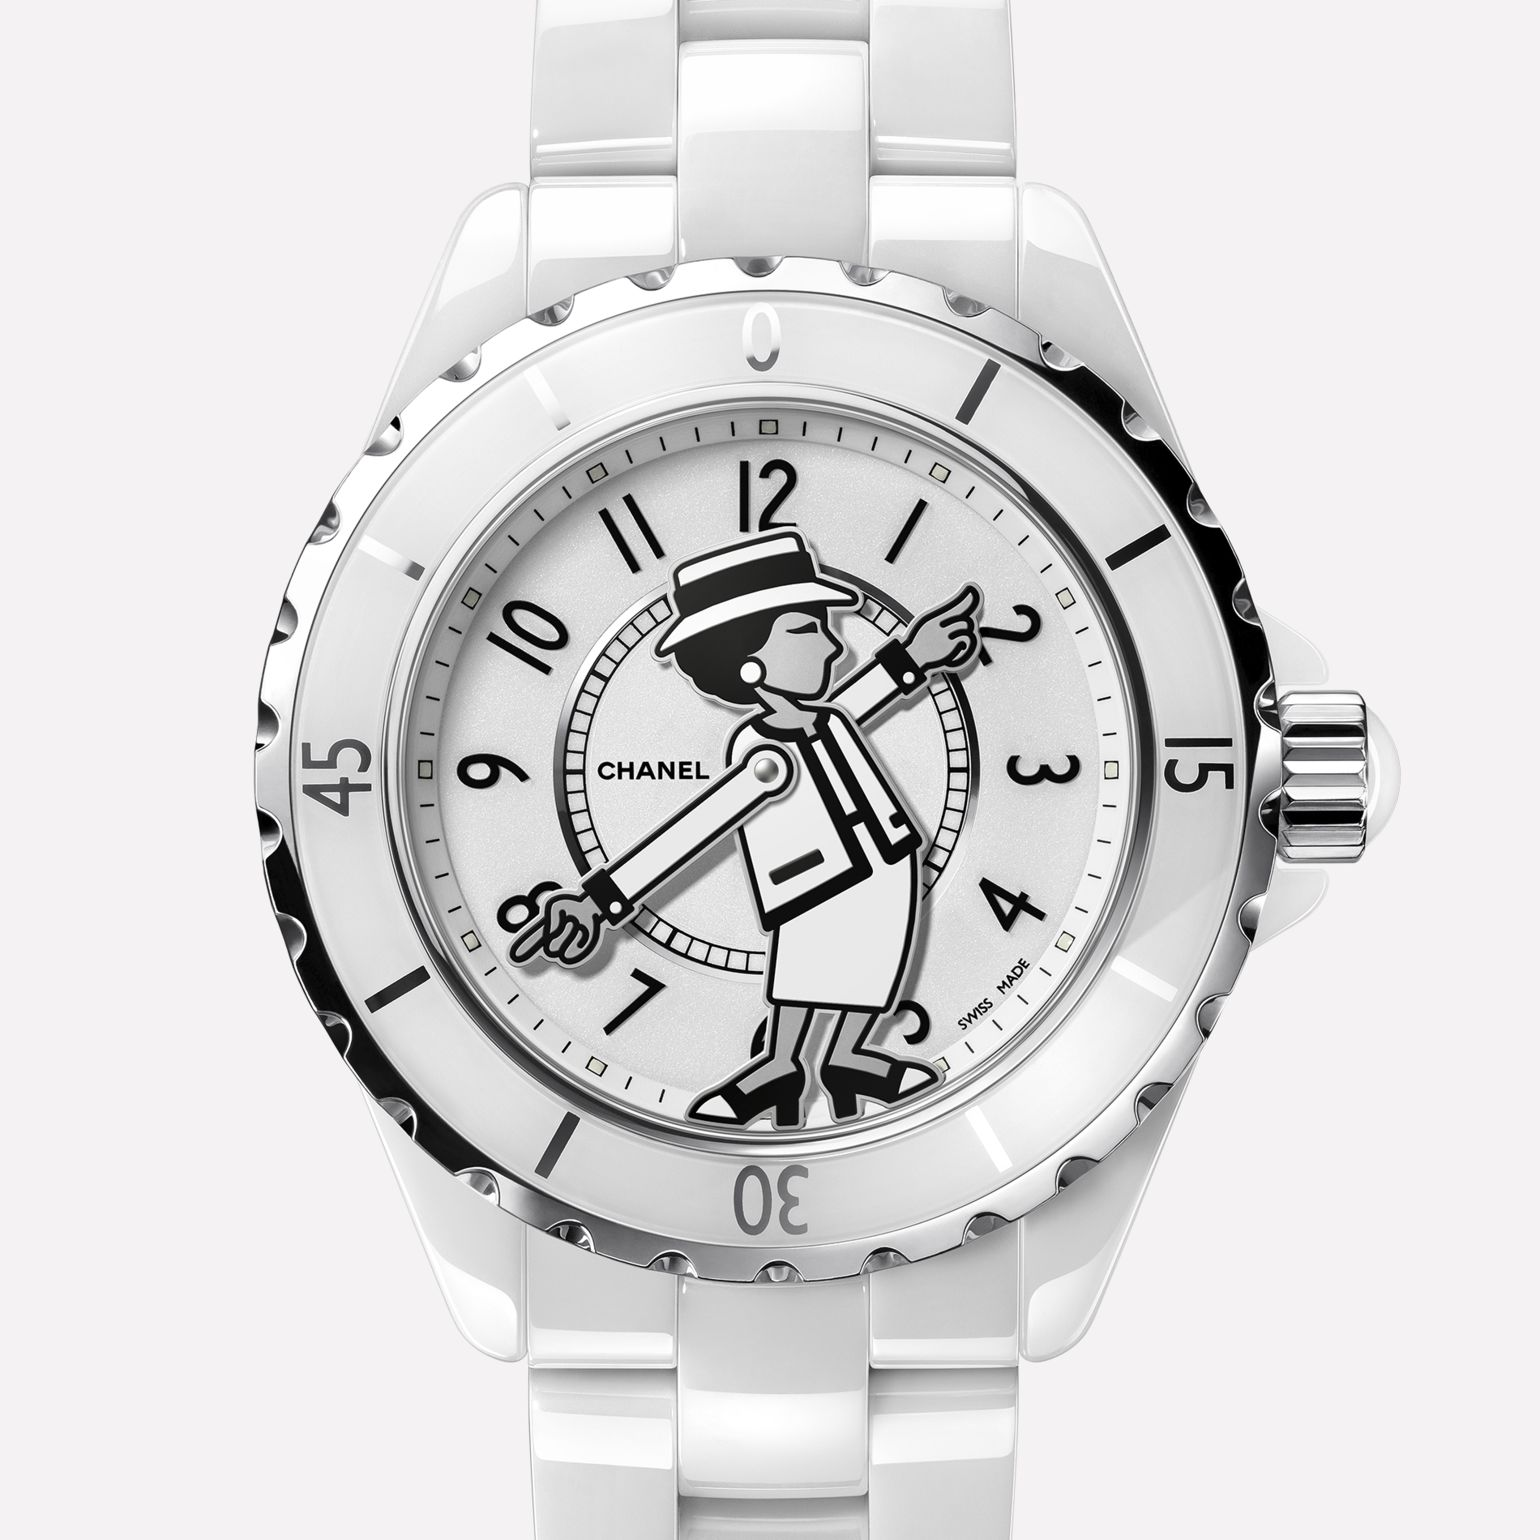 MADEMOISELLE J12 Watch White laquer dial. Silhouette of Mademoiselle CHANEL's arms indicate hours and minutes.